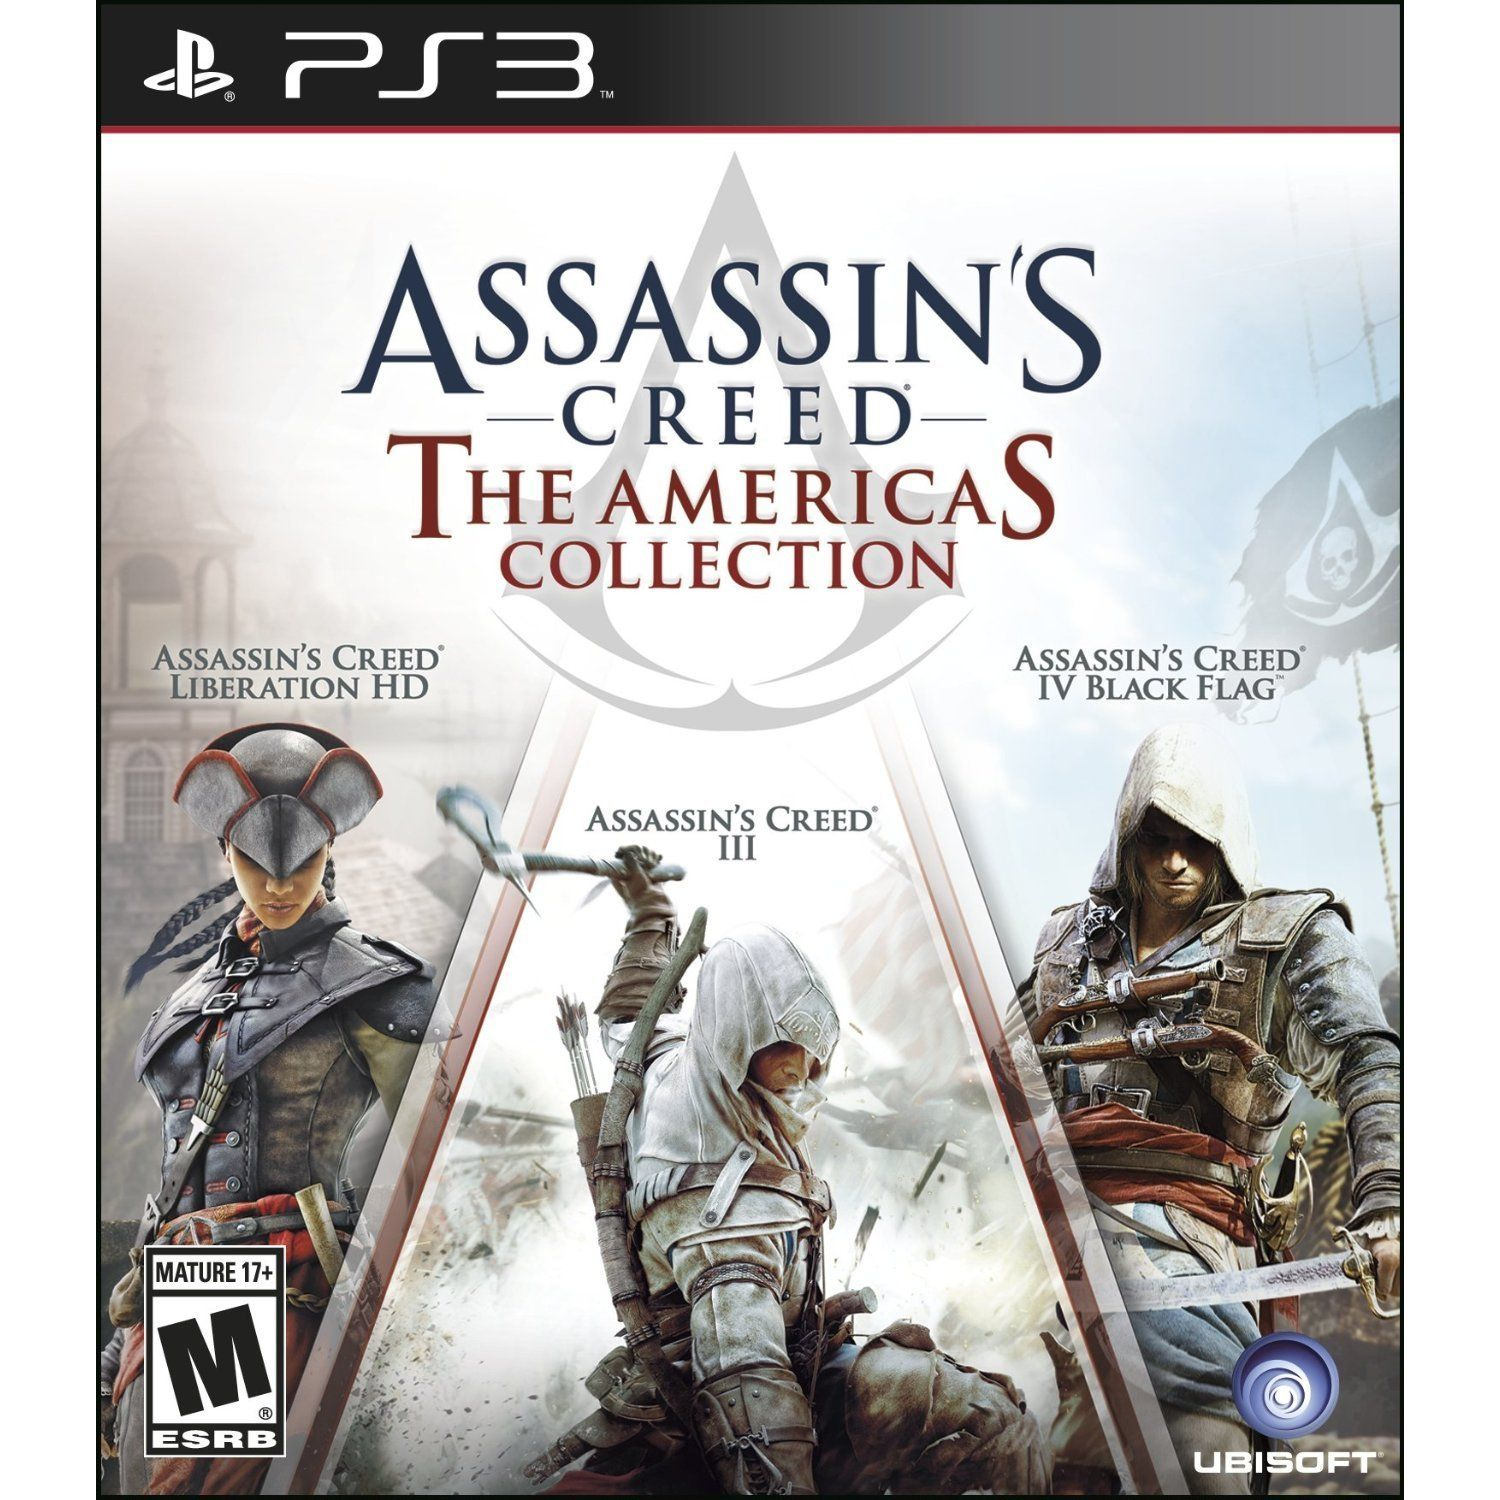 Ps3 Assassins Creed The Americas Collection Assassins Creed